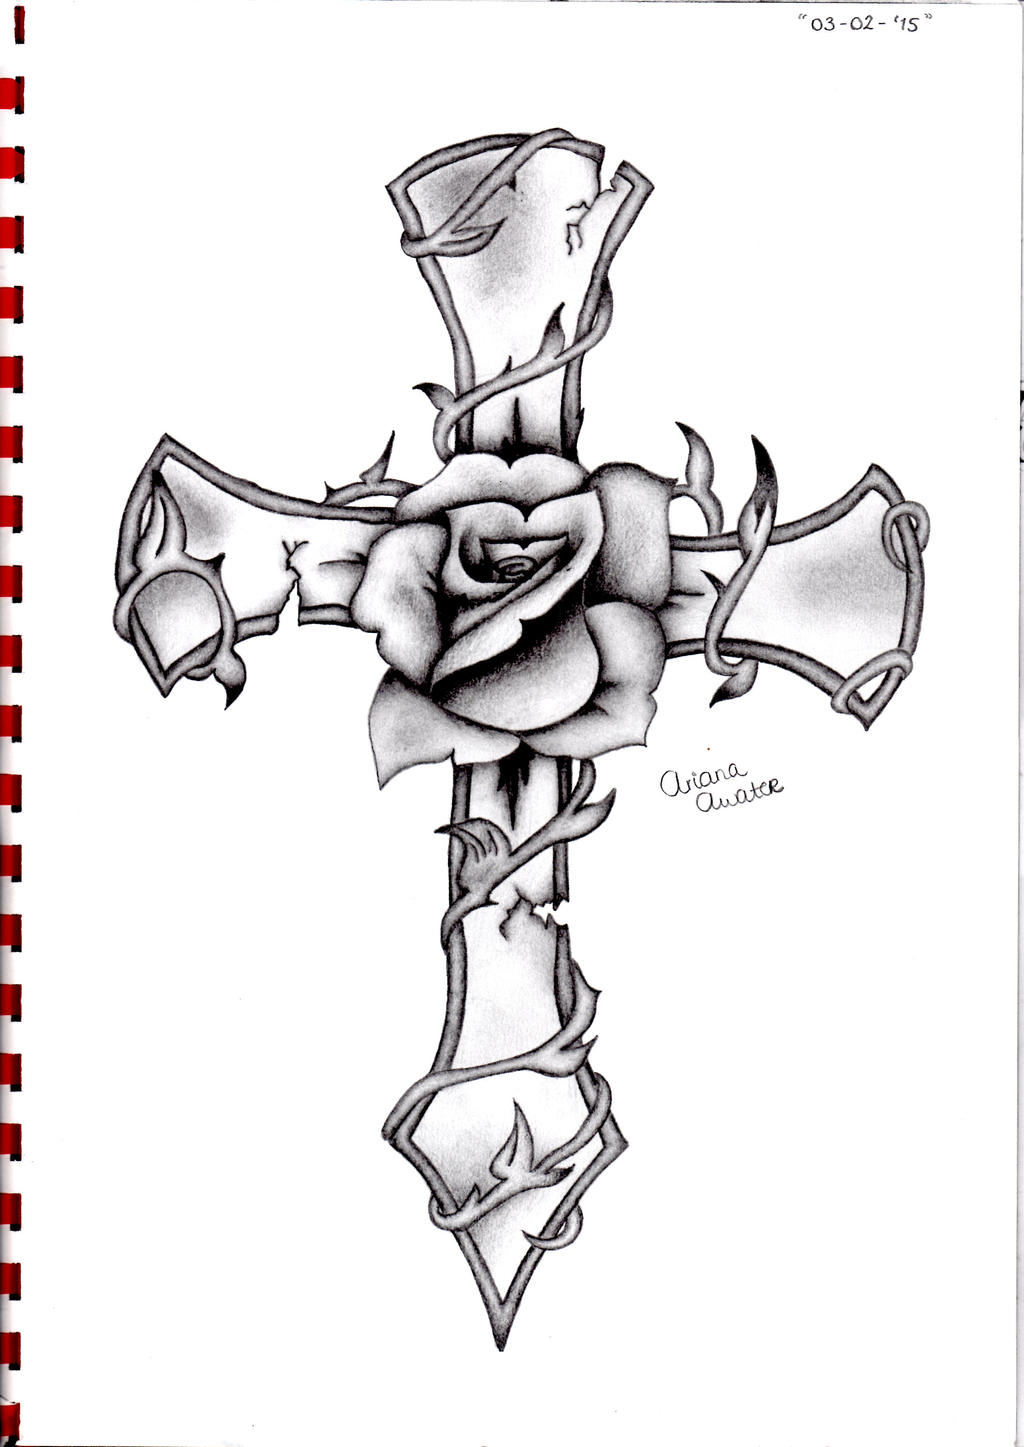 Cross rose by ariana 1997 on deviantart for 1997 tattoo designs